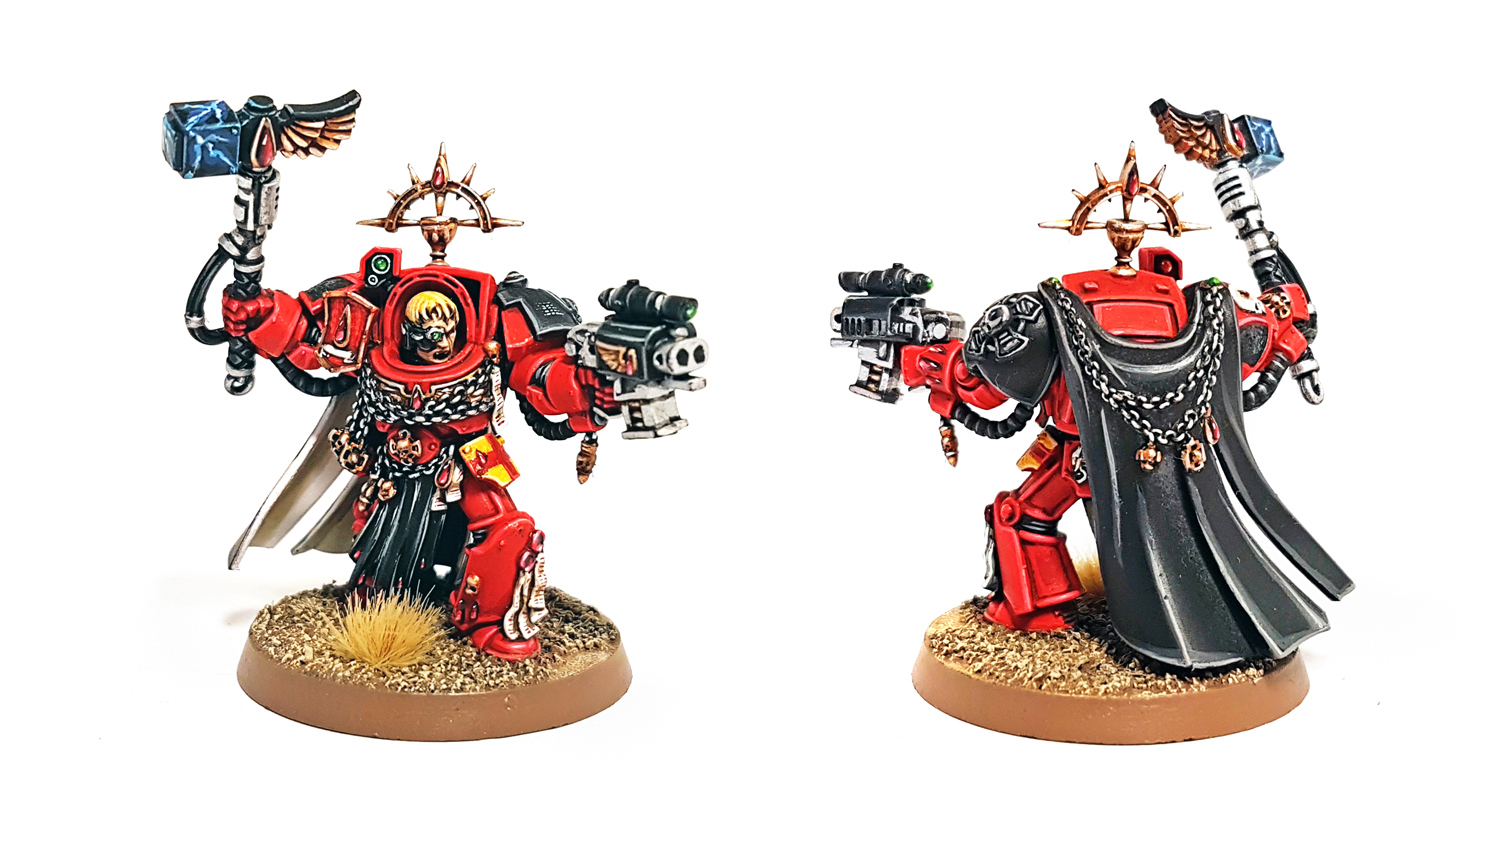 Deathhammer40k Warhammer 40,000 Commission Painted Tau Empire Farsight Enclave Project Blood Angel Terminator Captain